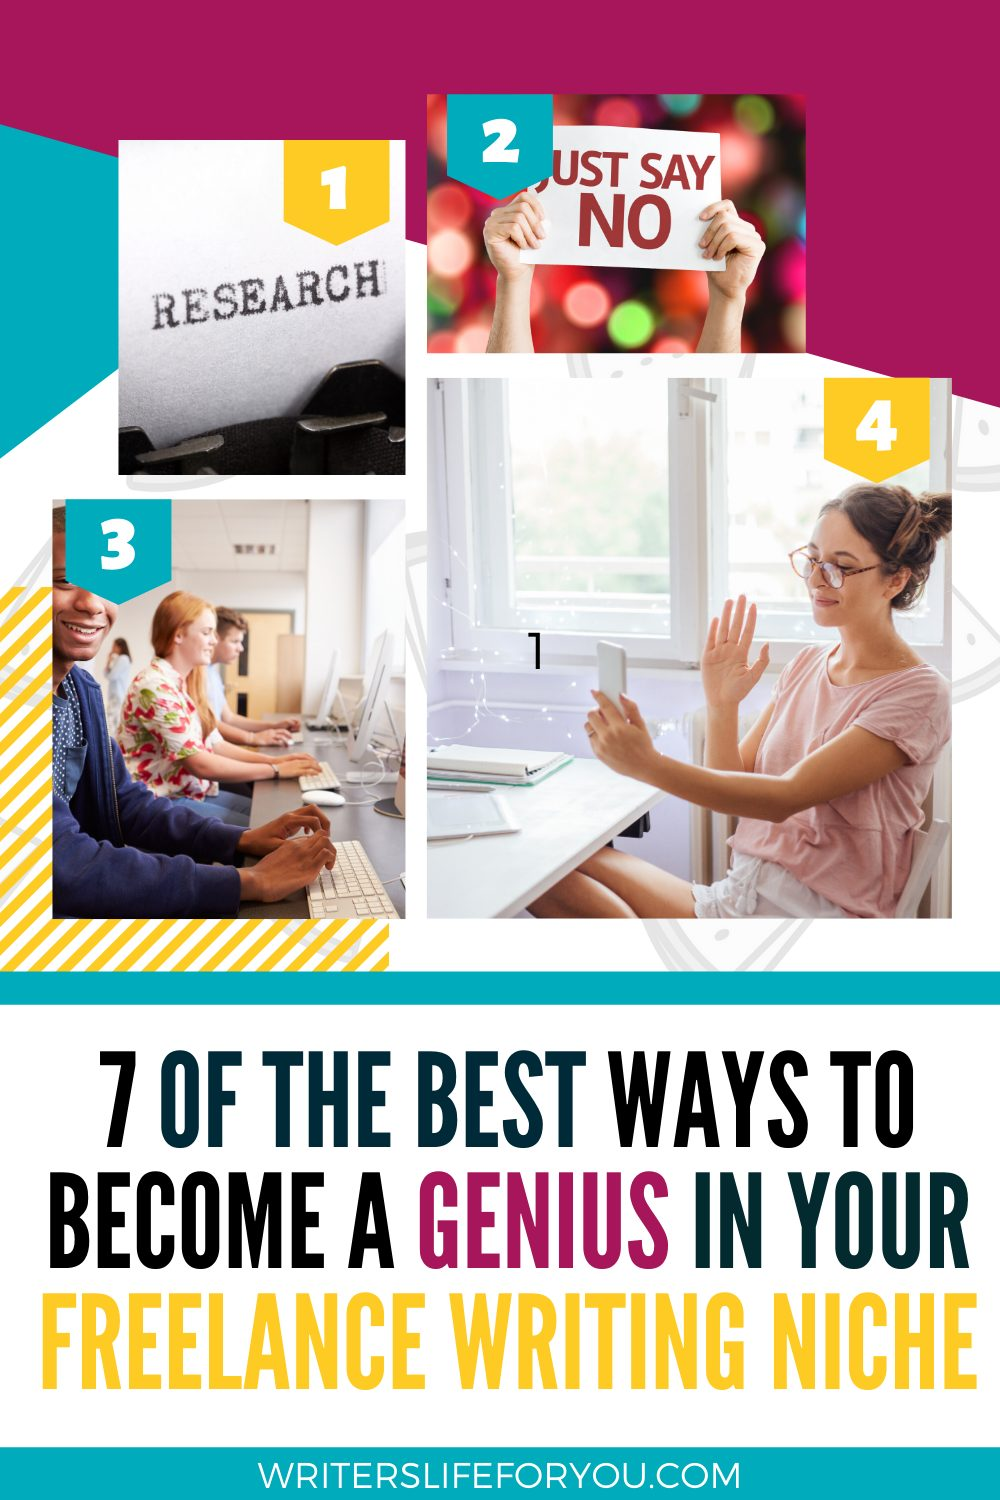 7 of the Best Ways to Become a Genius in Your Freelance Writing Niche